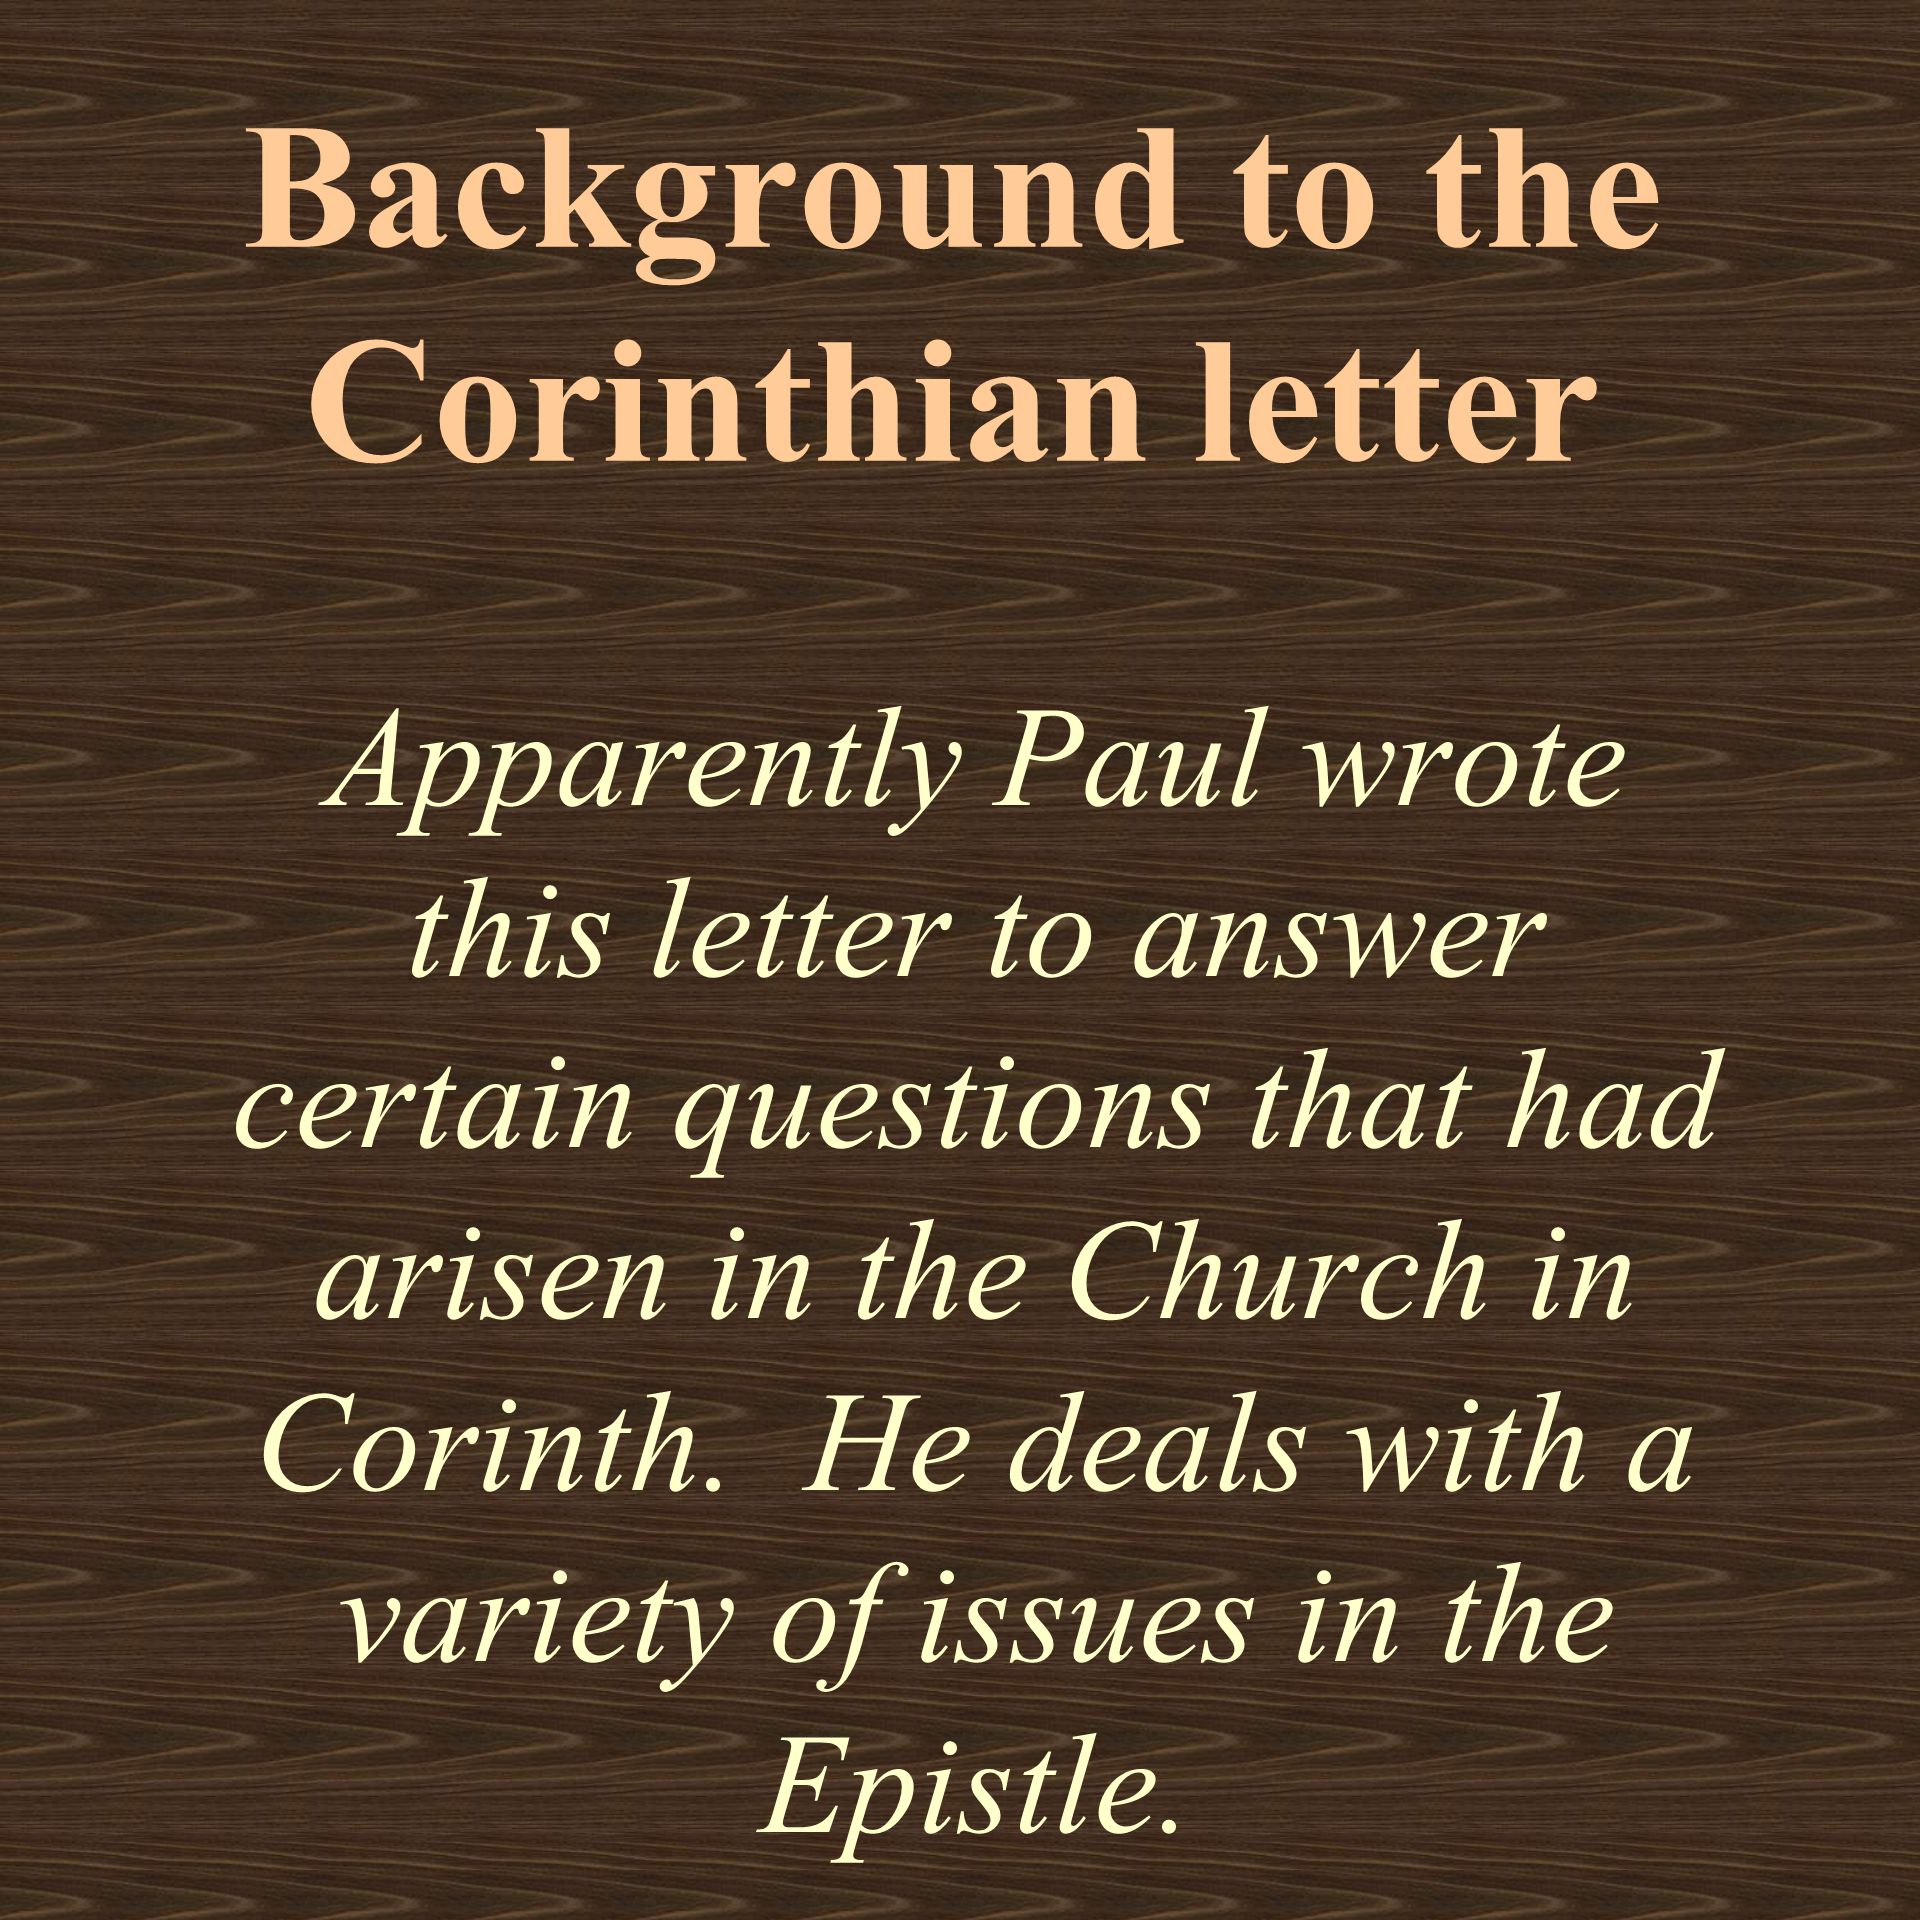 Background to the Corinthian letter Apparently Paul wrote this letter to answer certain questions that had arisen in the Church in Corinth.